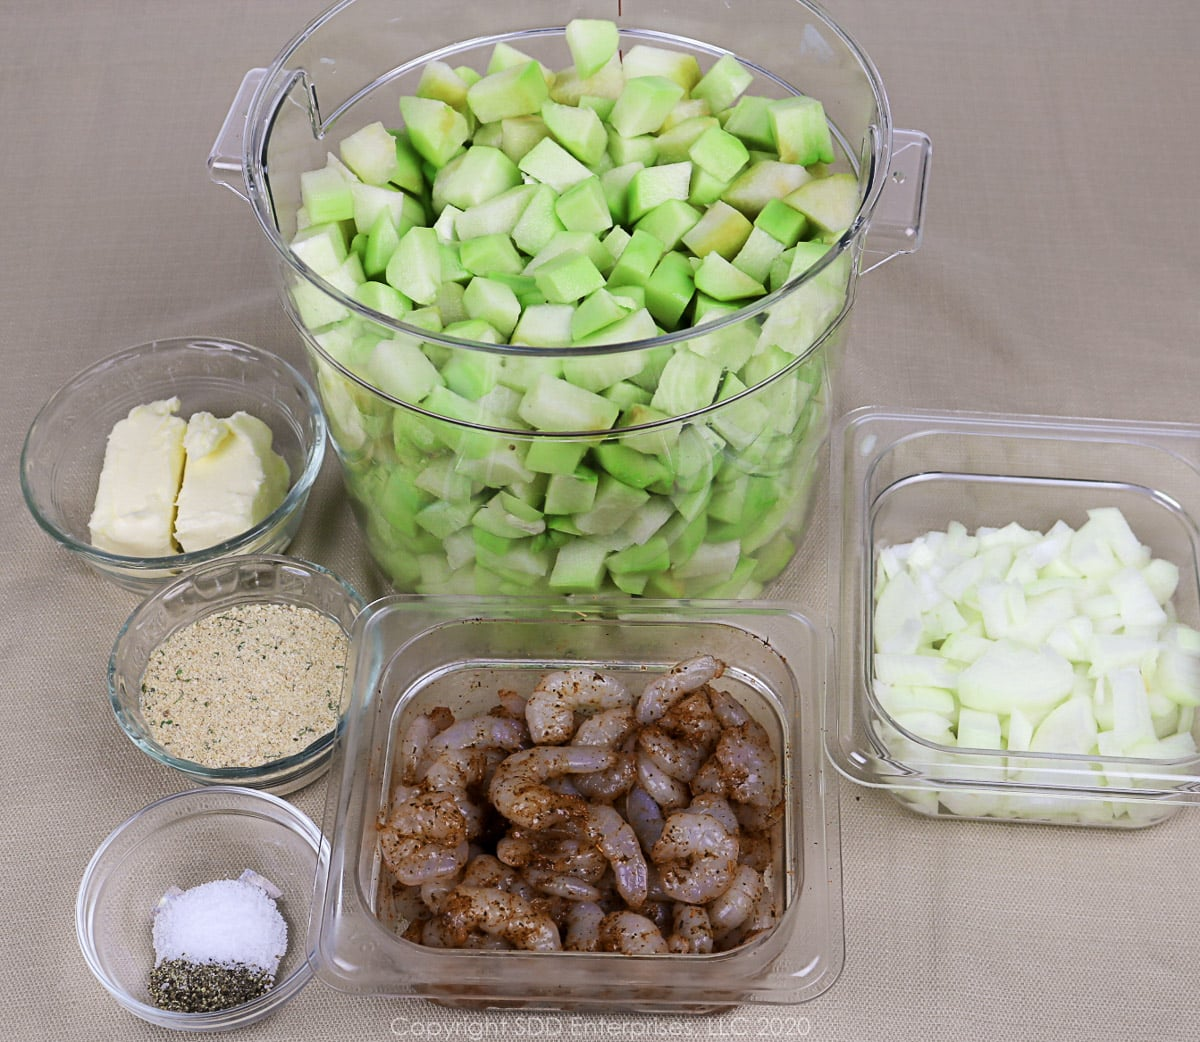 prepared ingredients for mirliton casserole with shrimp